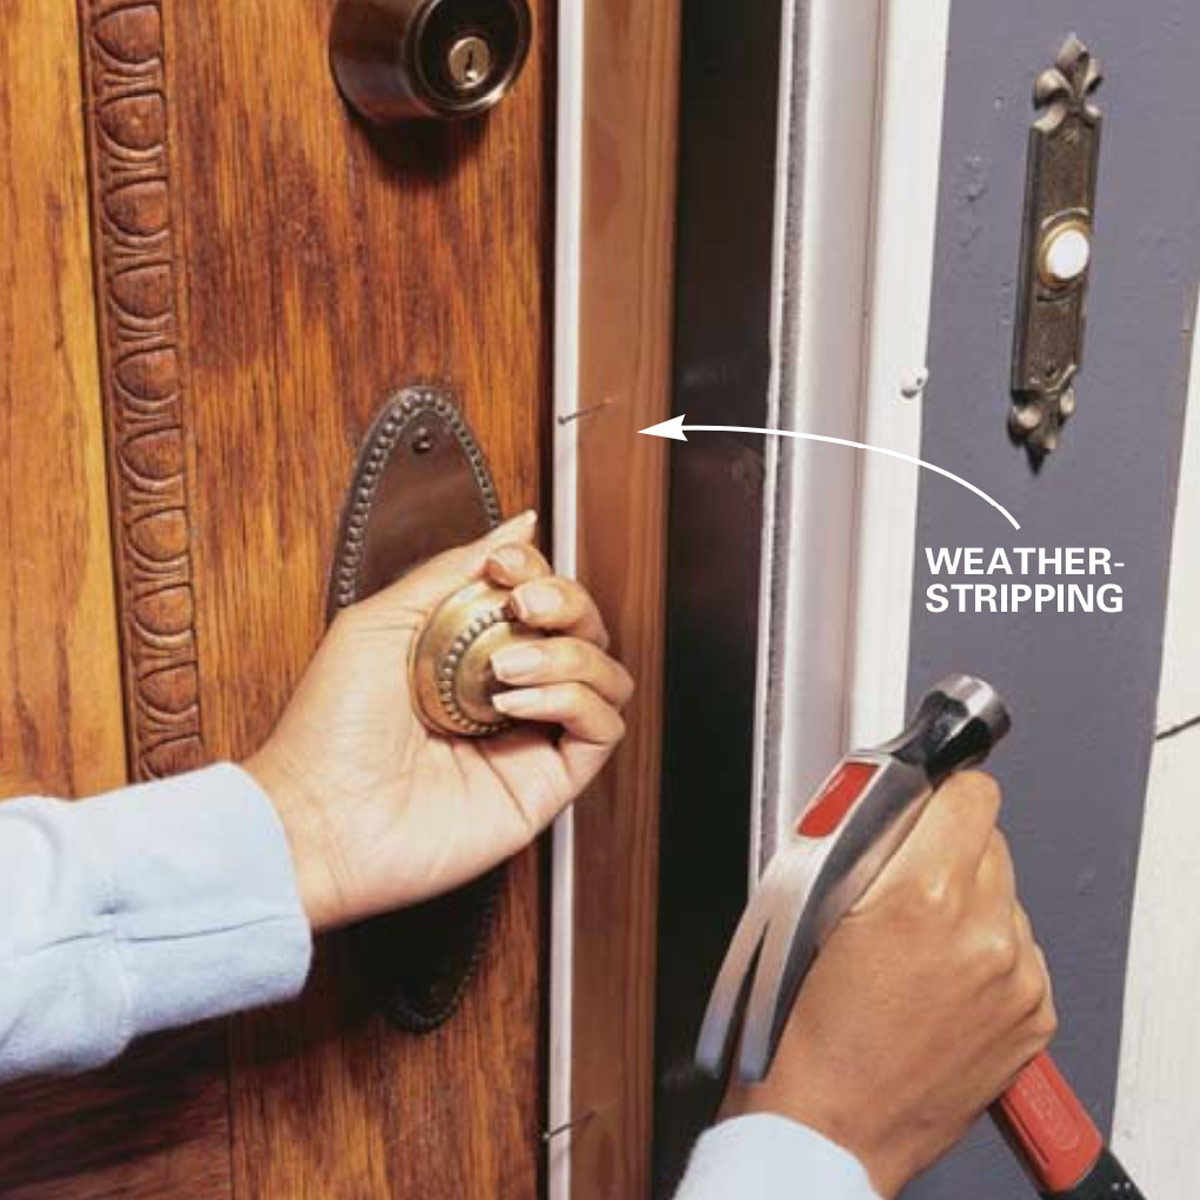 How to Weather Strip a Door | Family Handyman